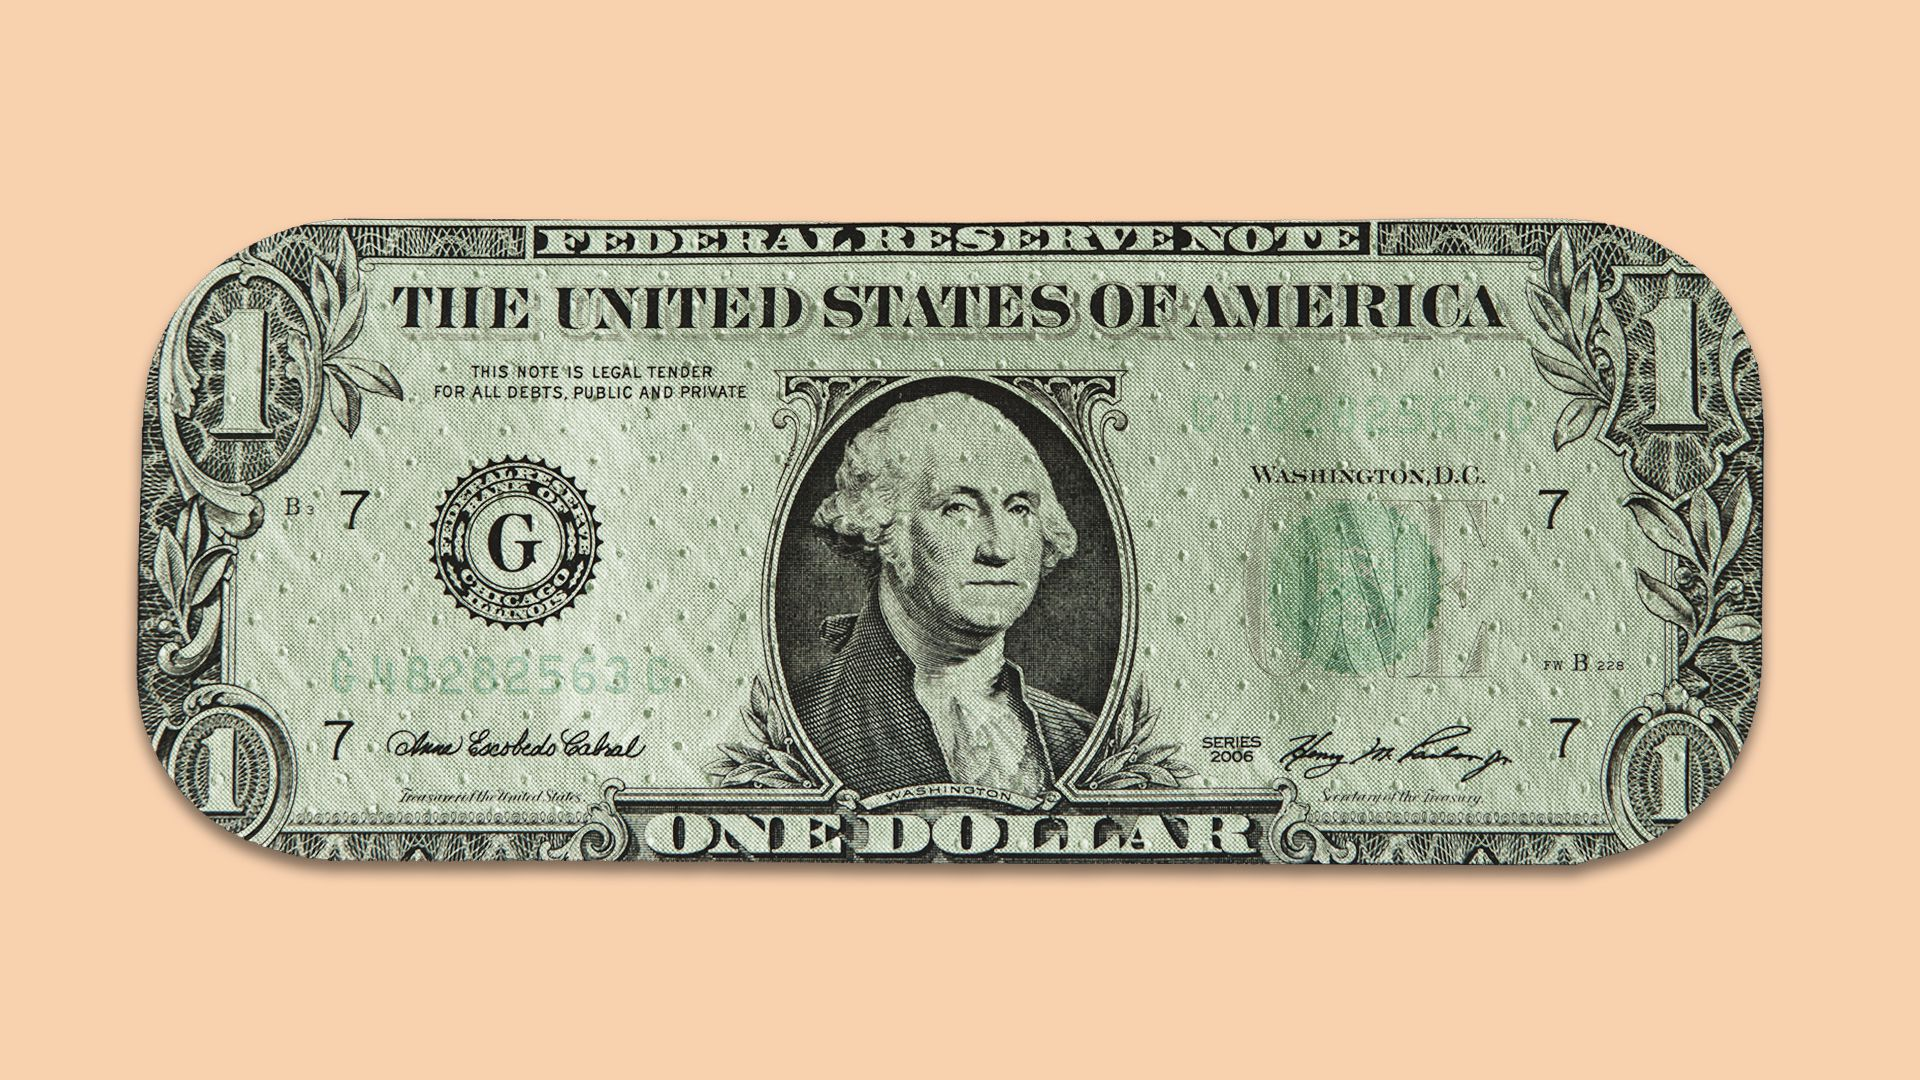 In this illustration, a dollar bill is shaped and textured like a Band-Aid.